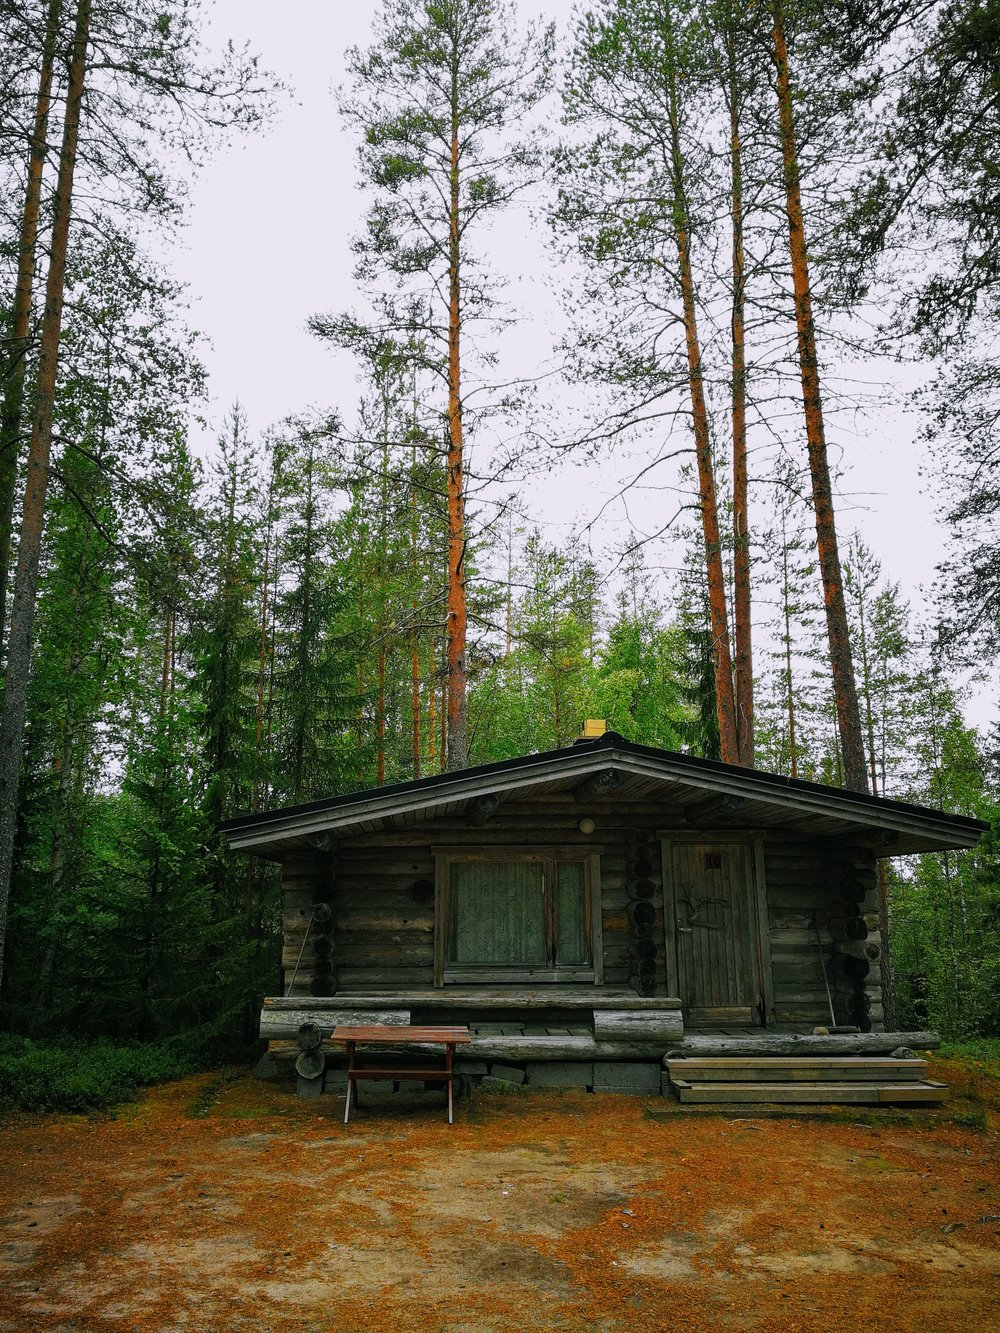 Just one of many cabins available near Kehys-Kainuu, Finland